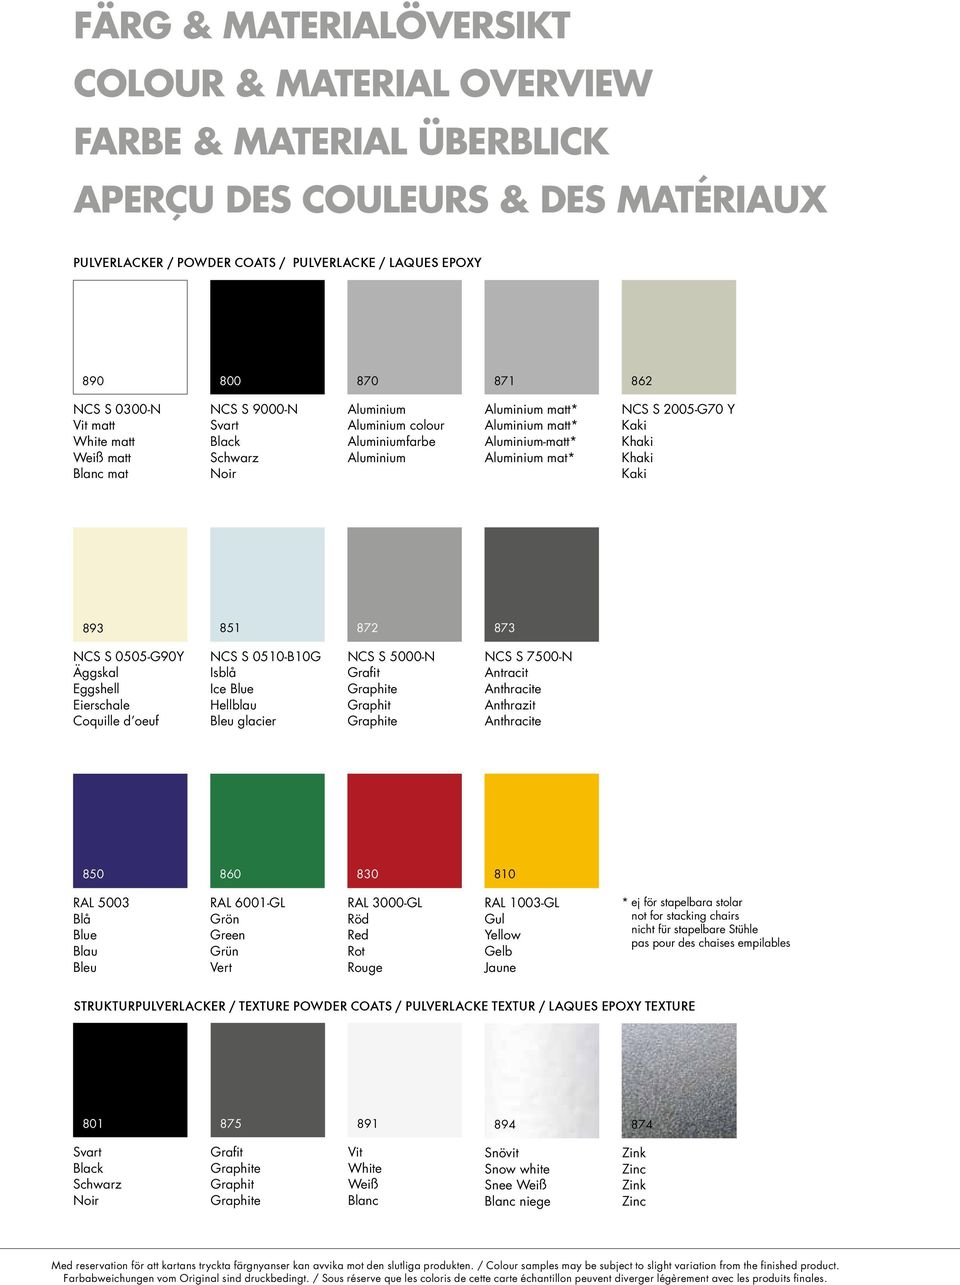 Farg Materialoversikt Colour Material Overview Farbe Material